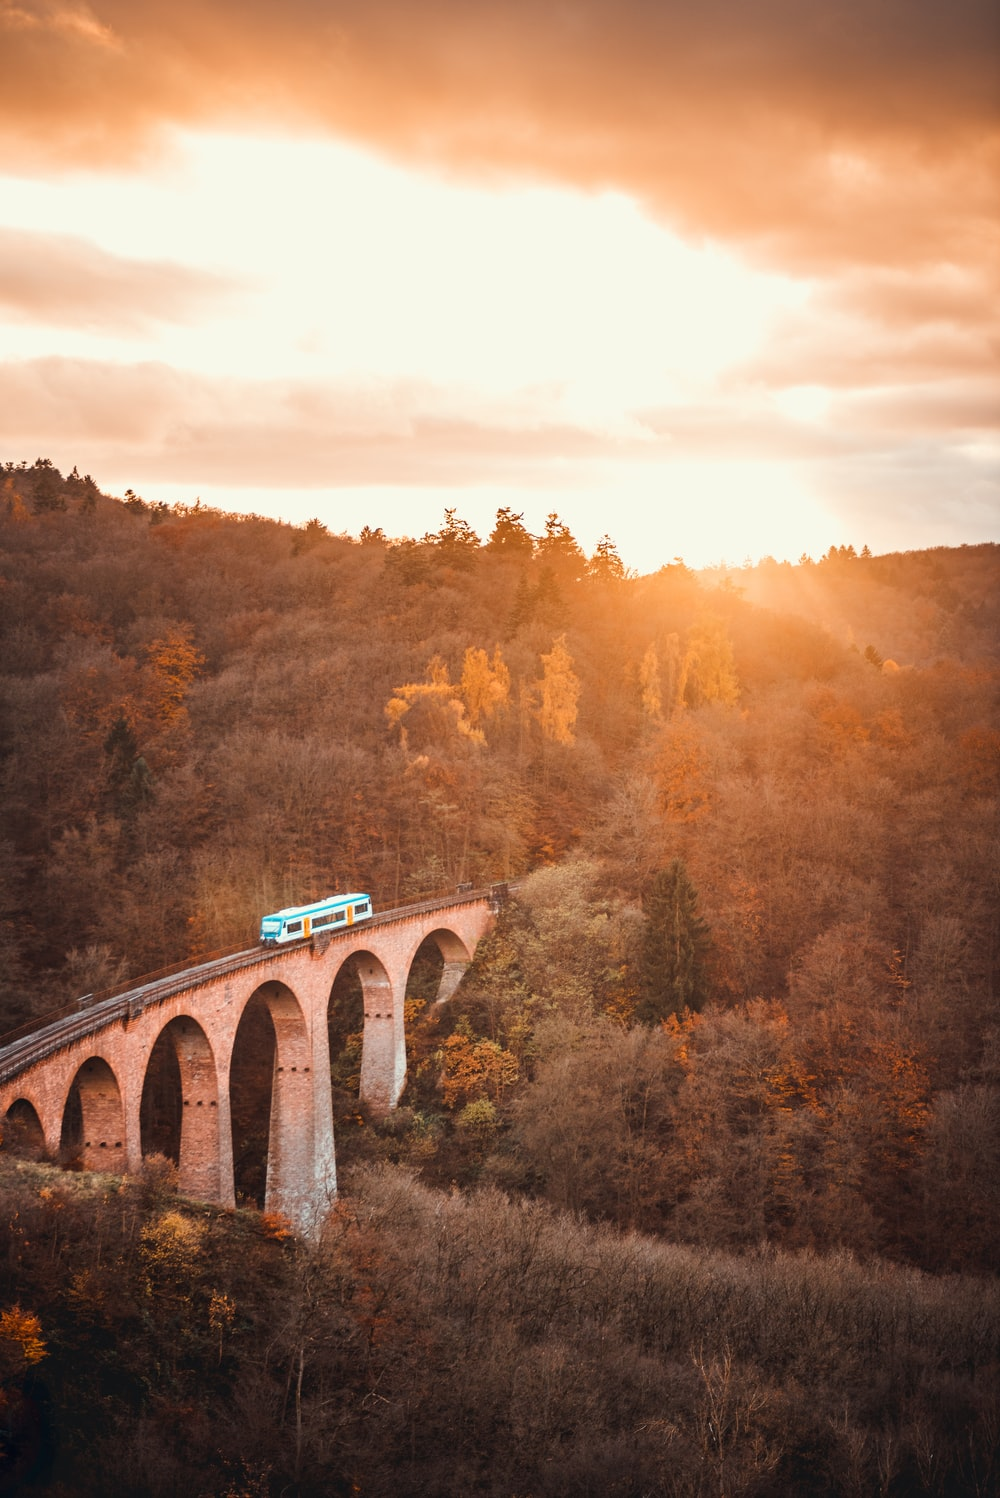 aerial view photography of train on bridge during sunset